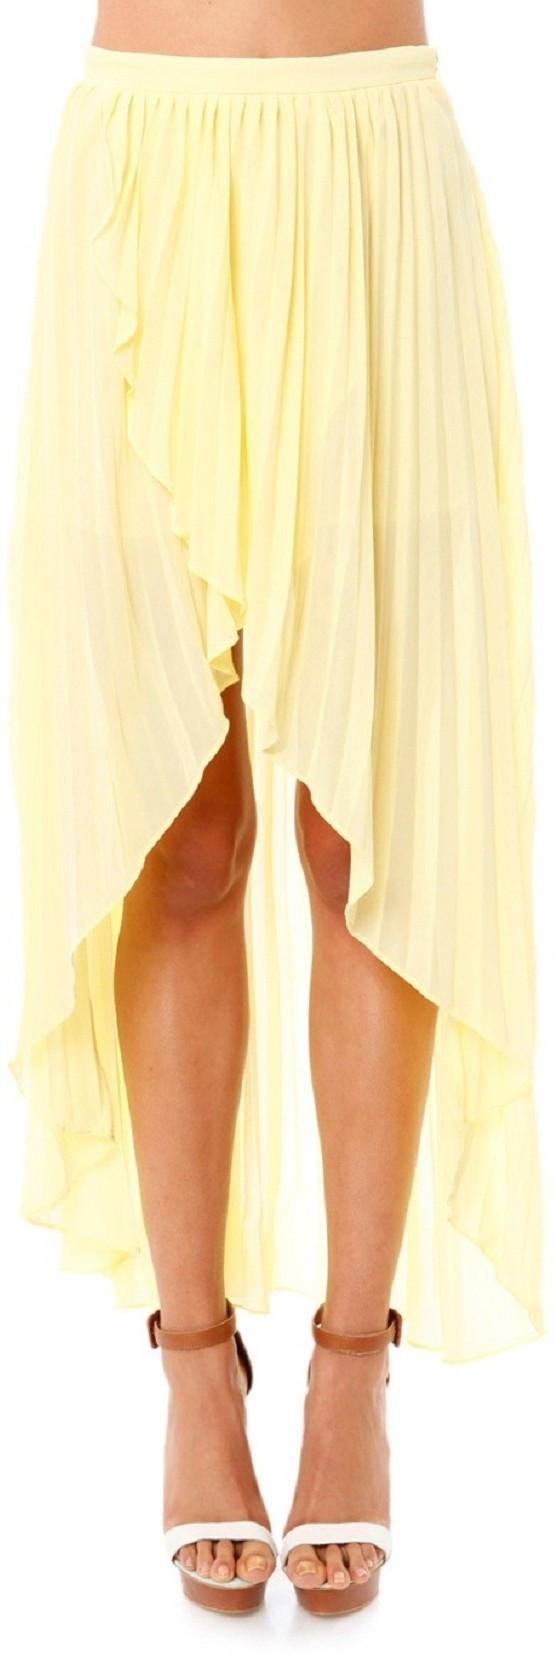 Junk Solid Womens Pleated Yellow Skirt